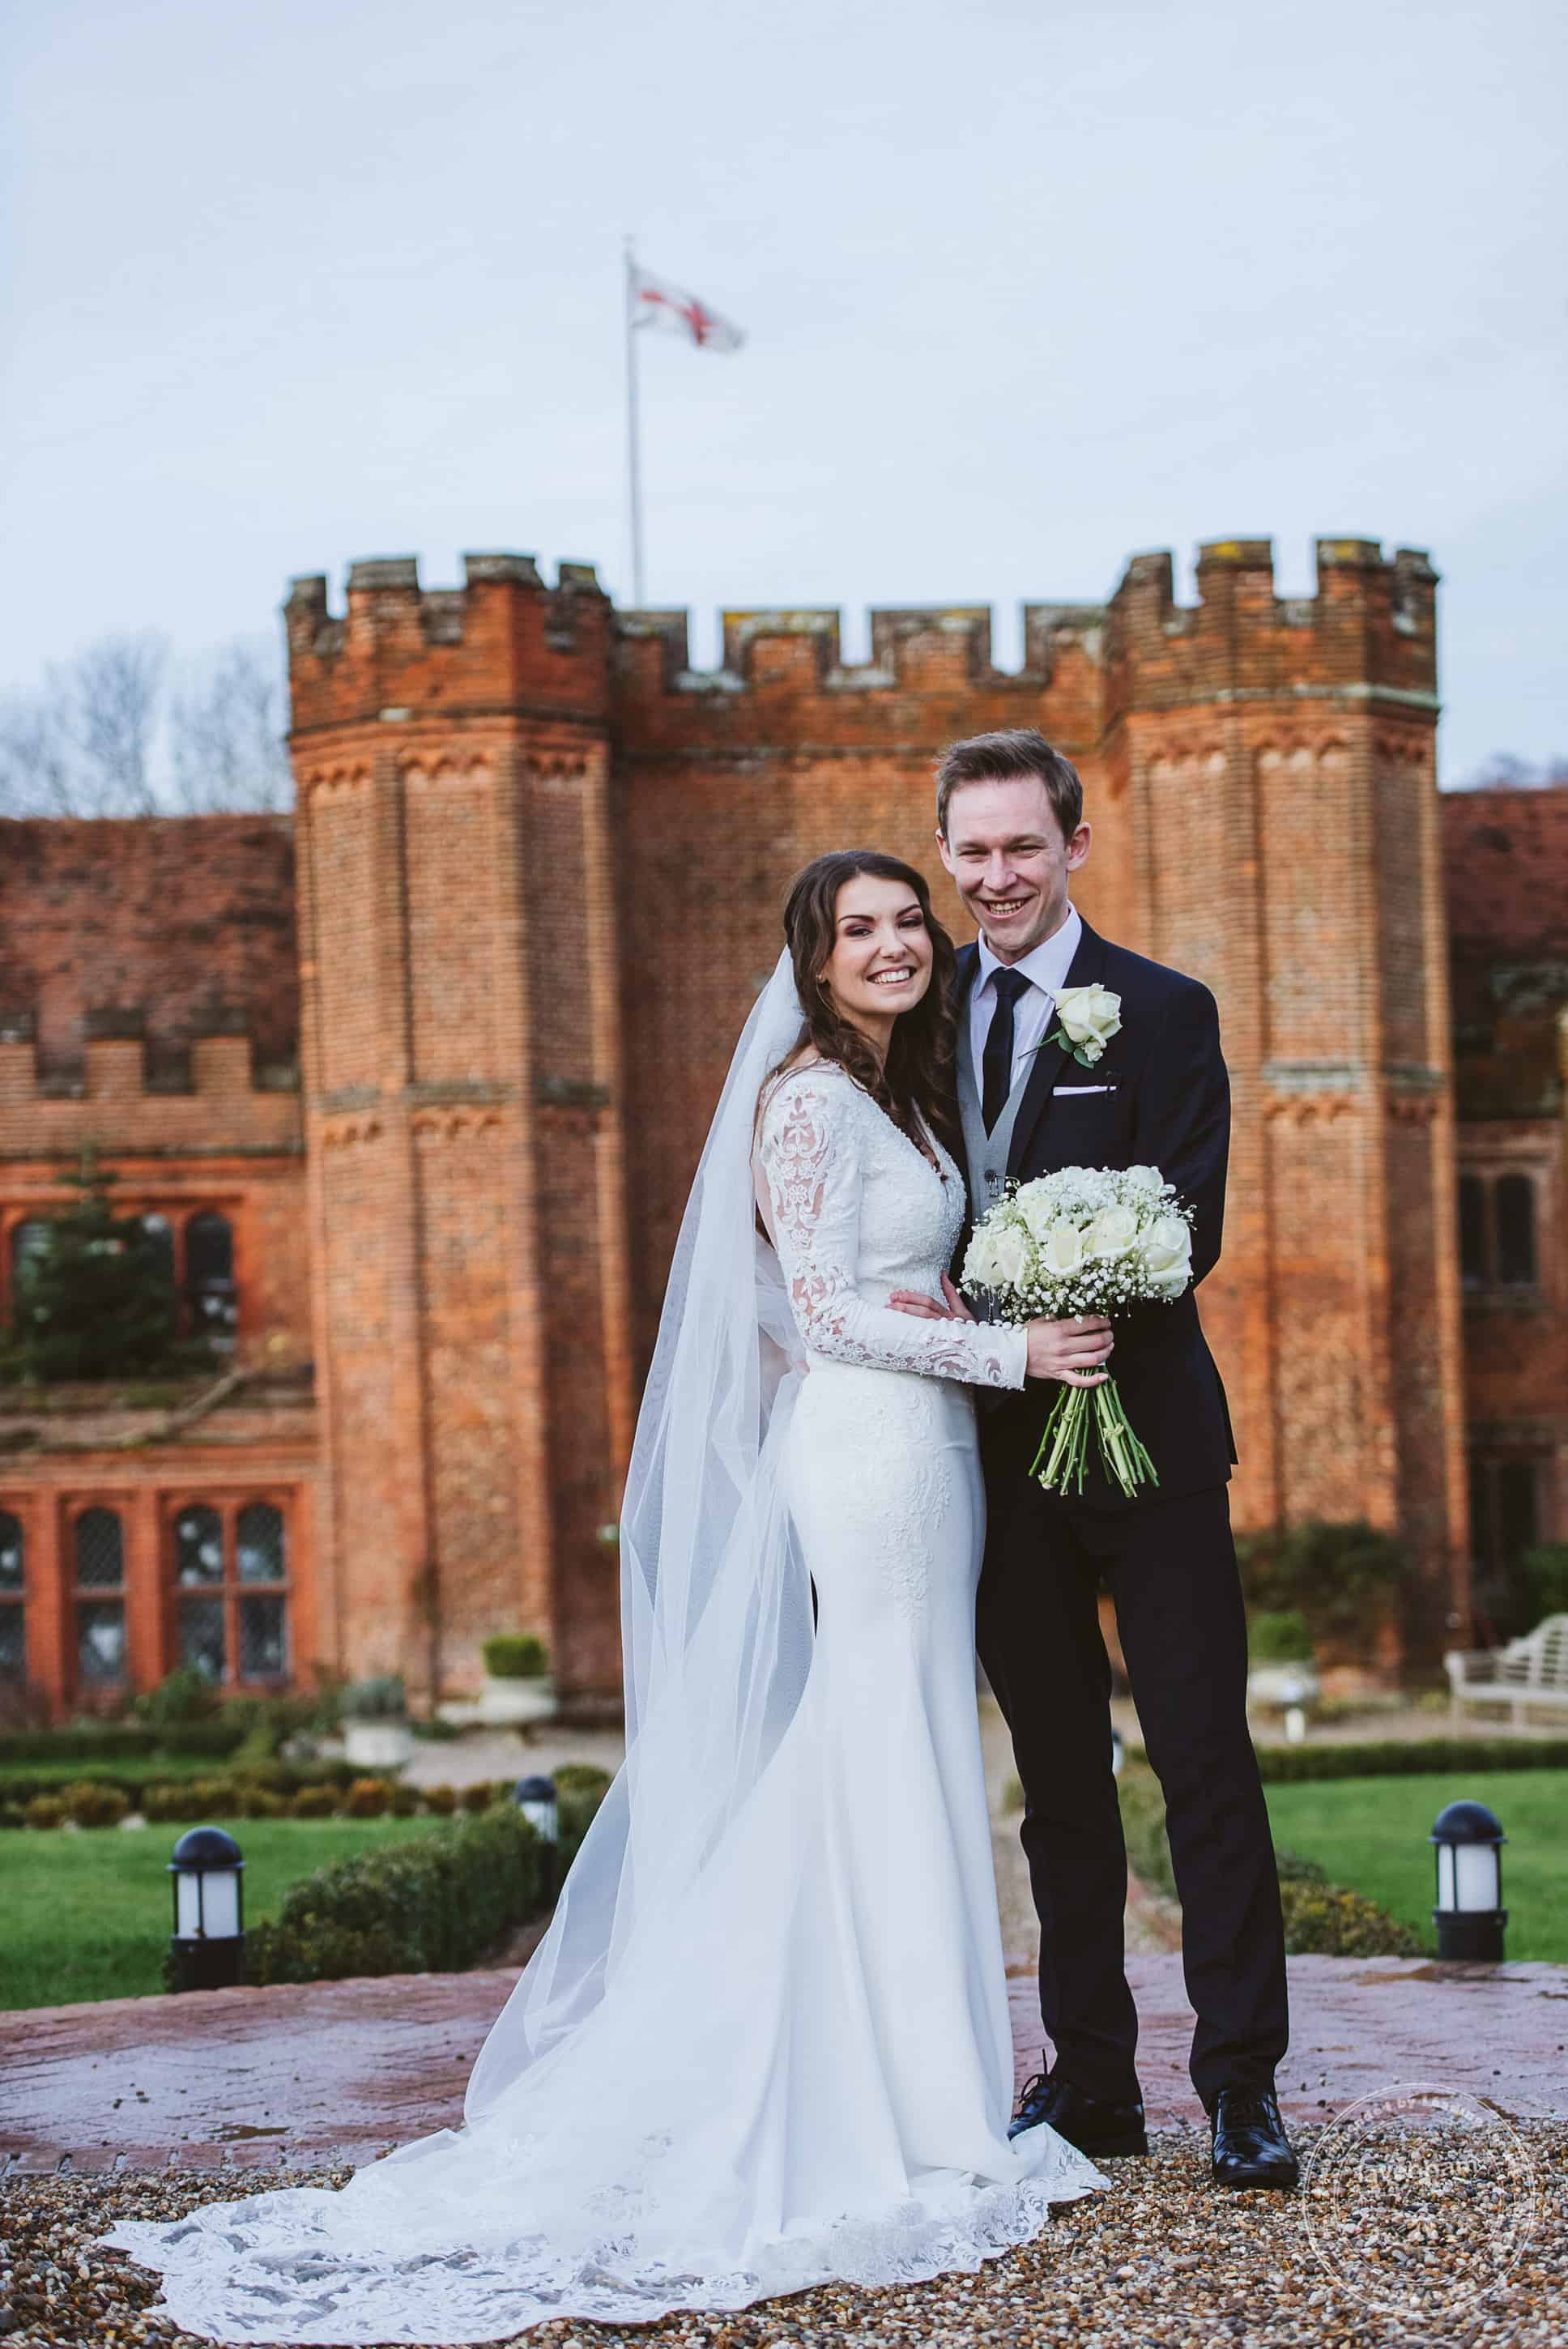 221219 Leez Priory Wedding Photoraphy 070